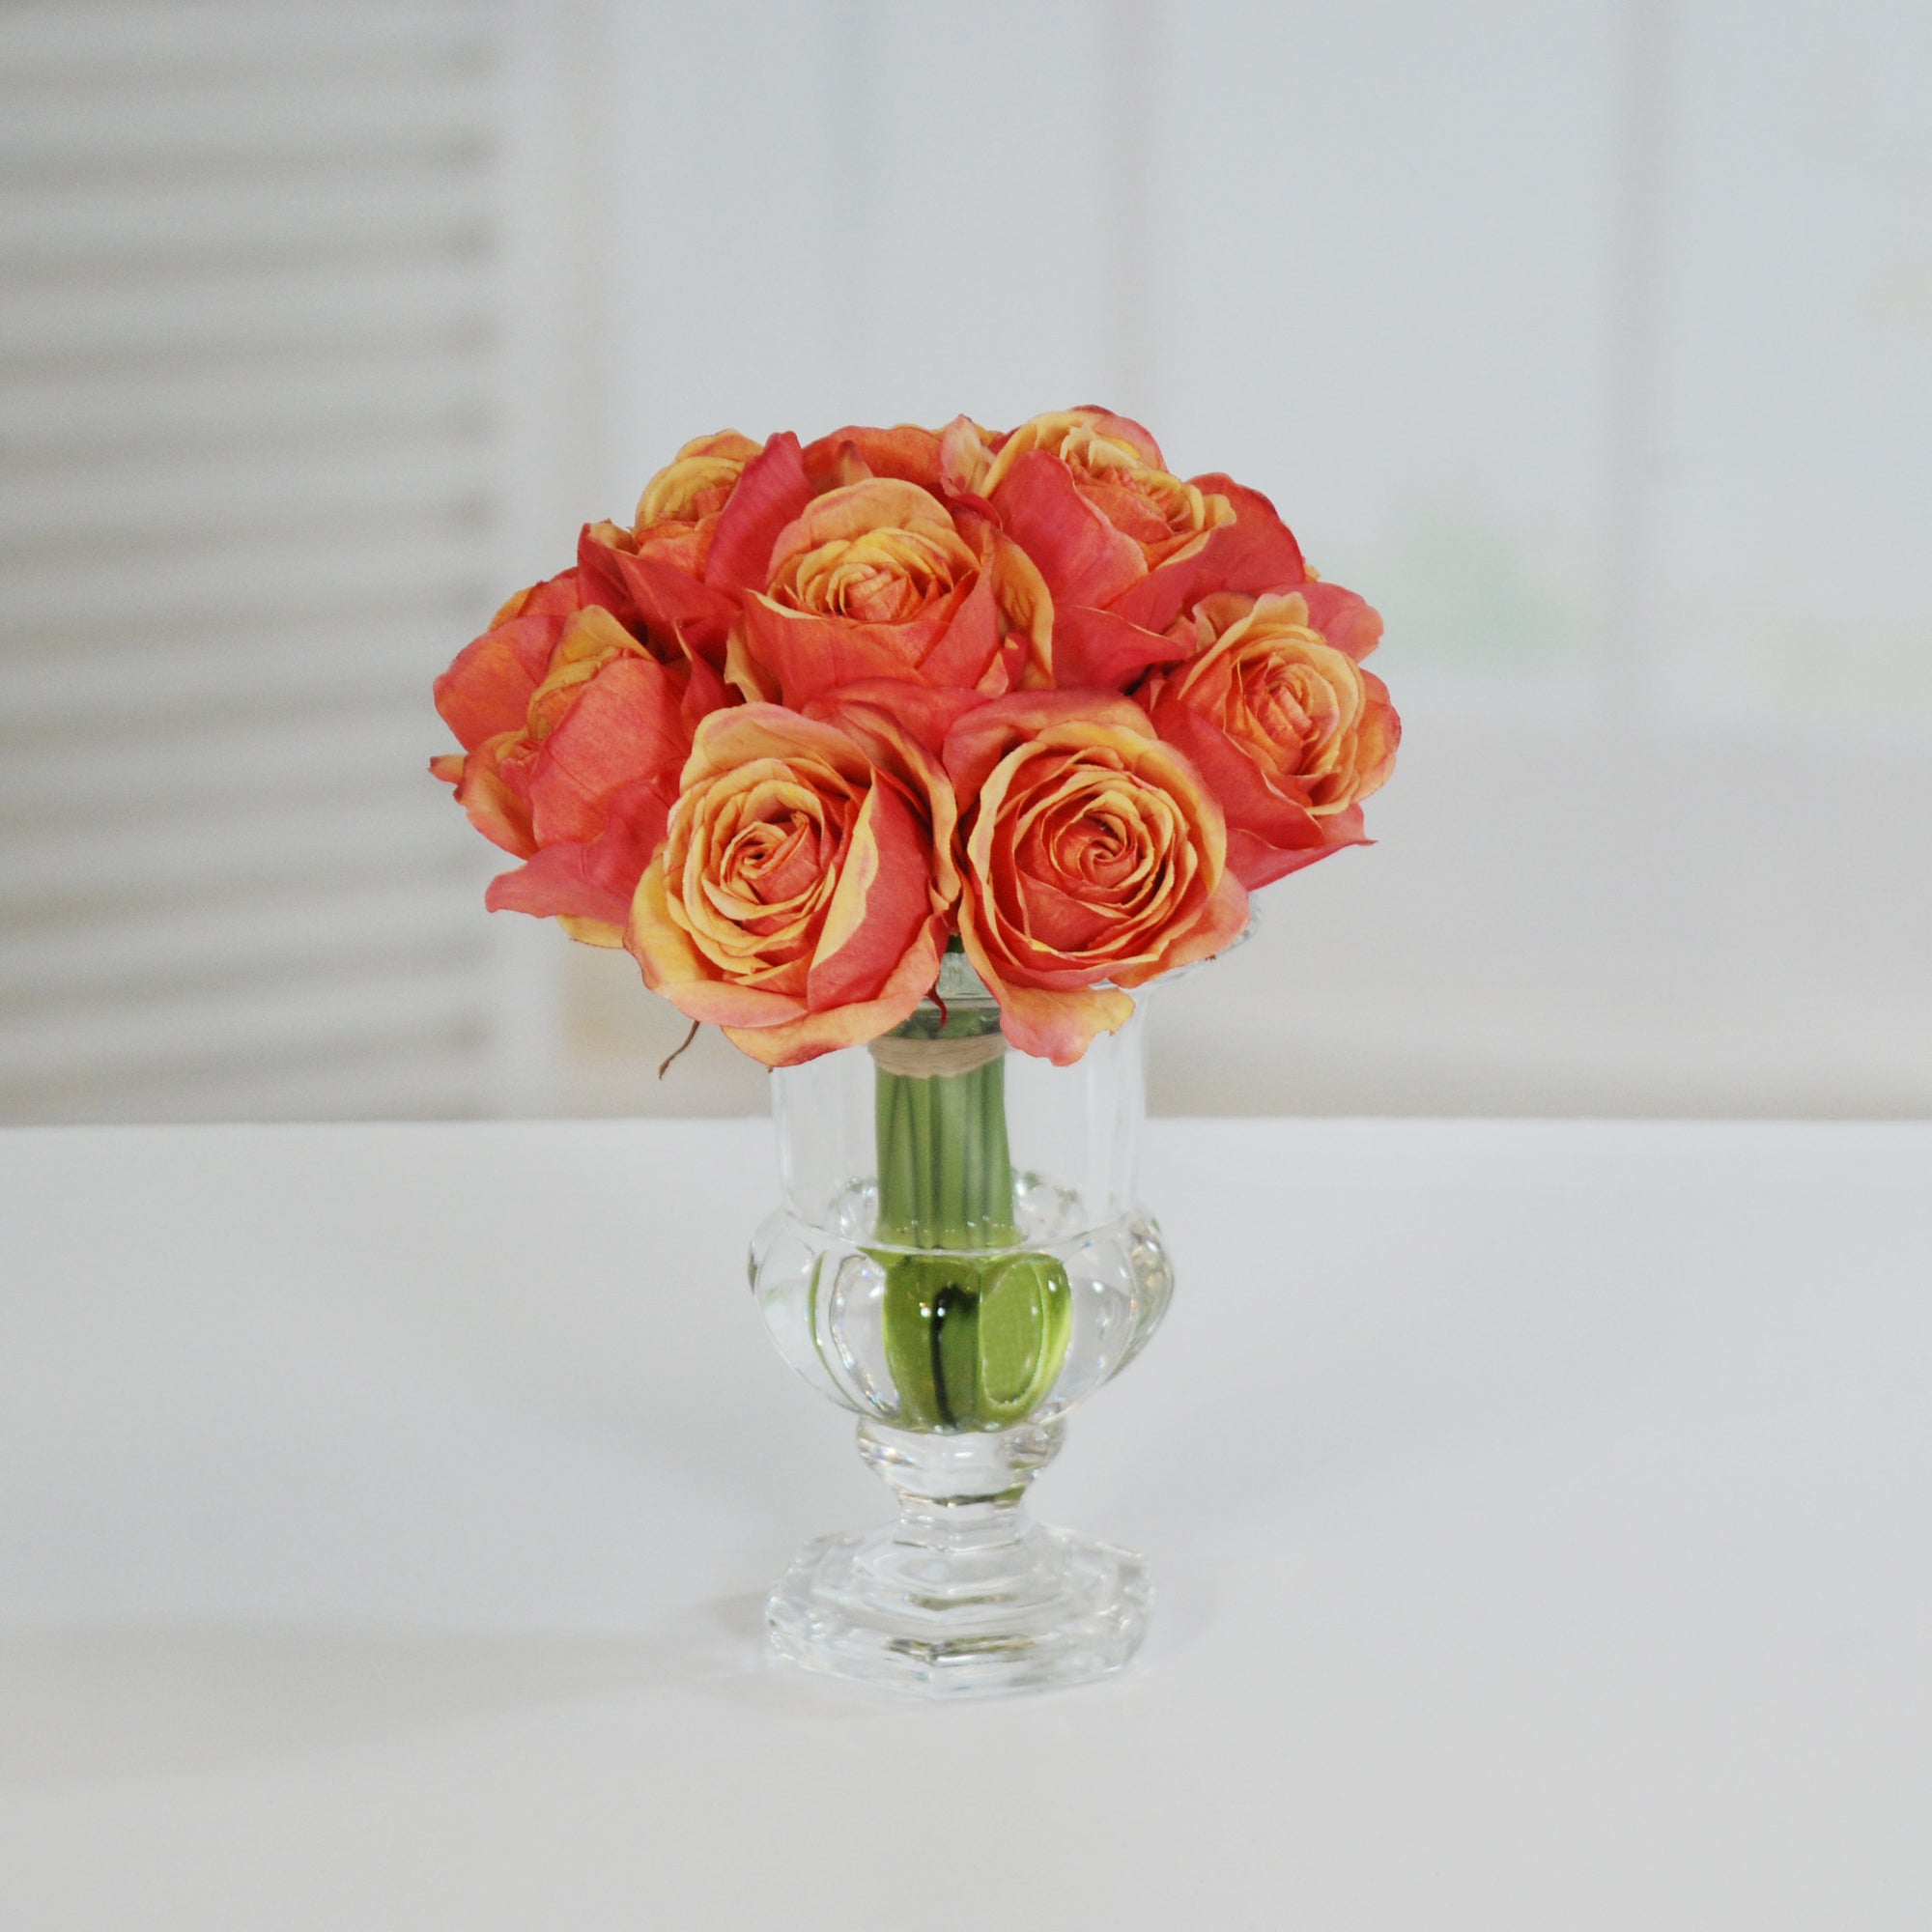 ROSE IN CRYSTAL GLASS 9.5'' (WHI010-PCRD) - Winward Home faux floral arrangements